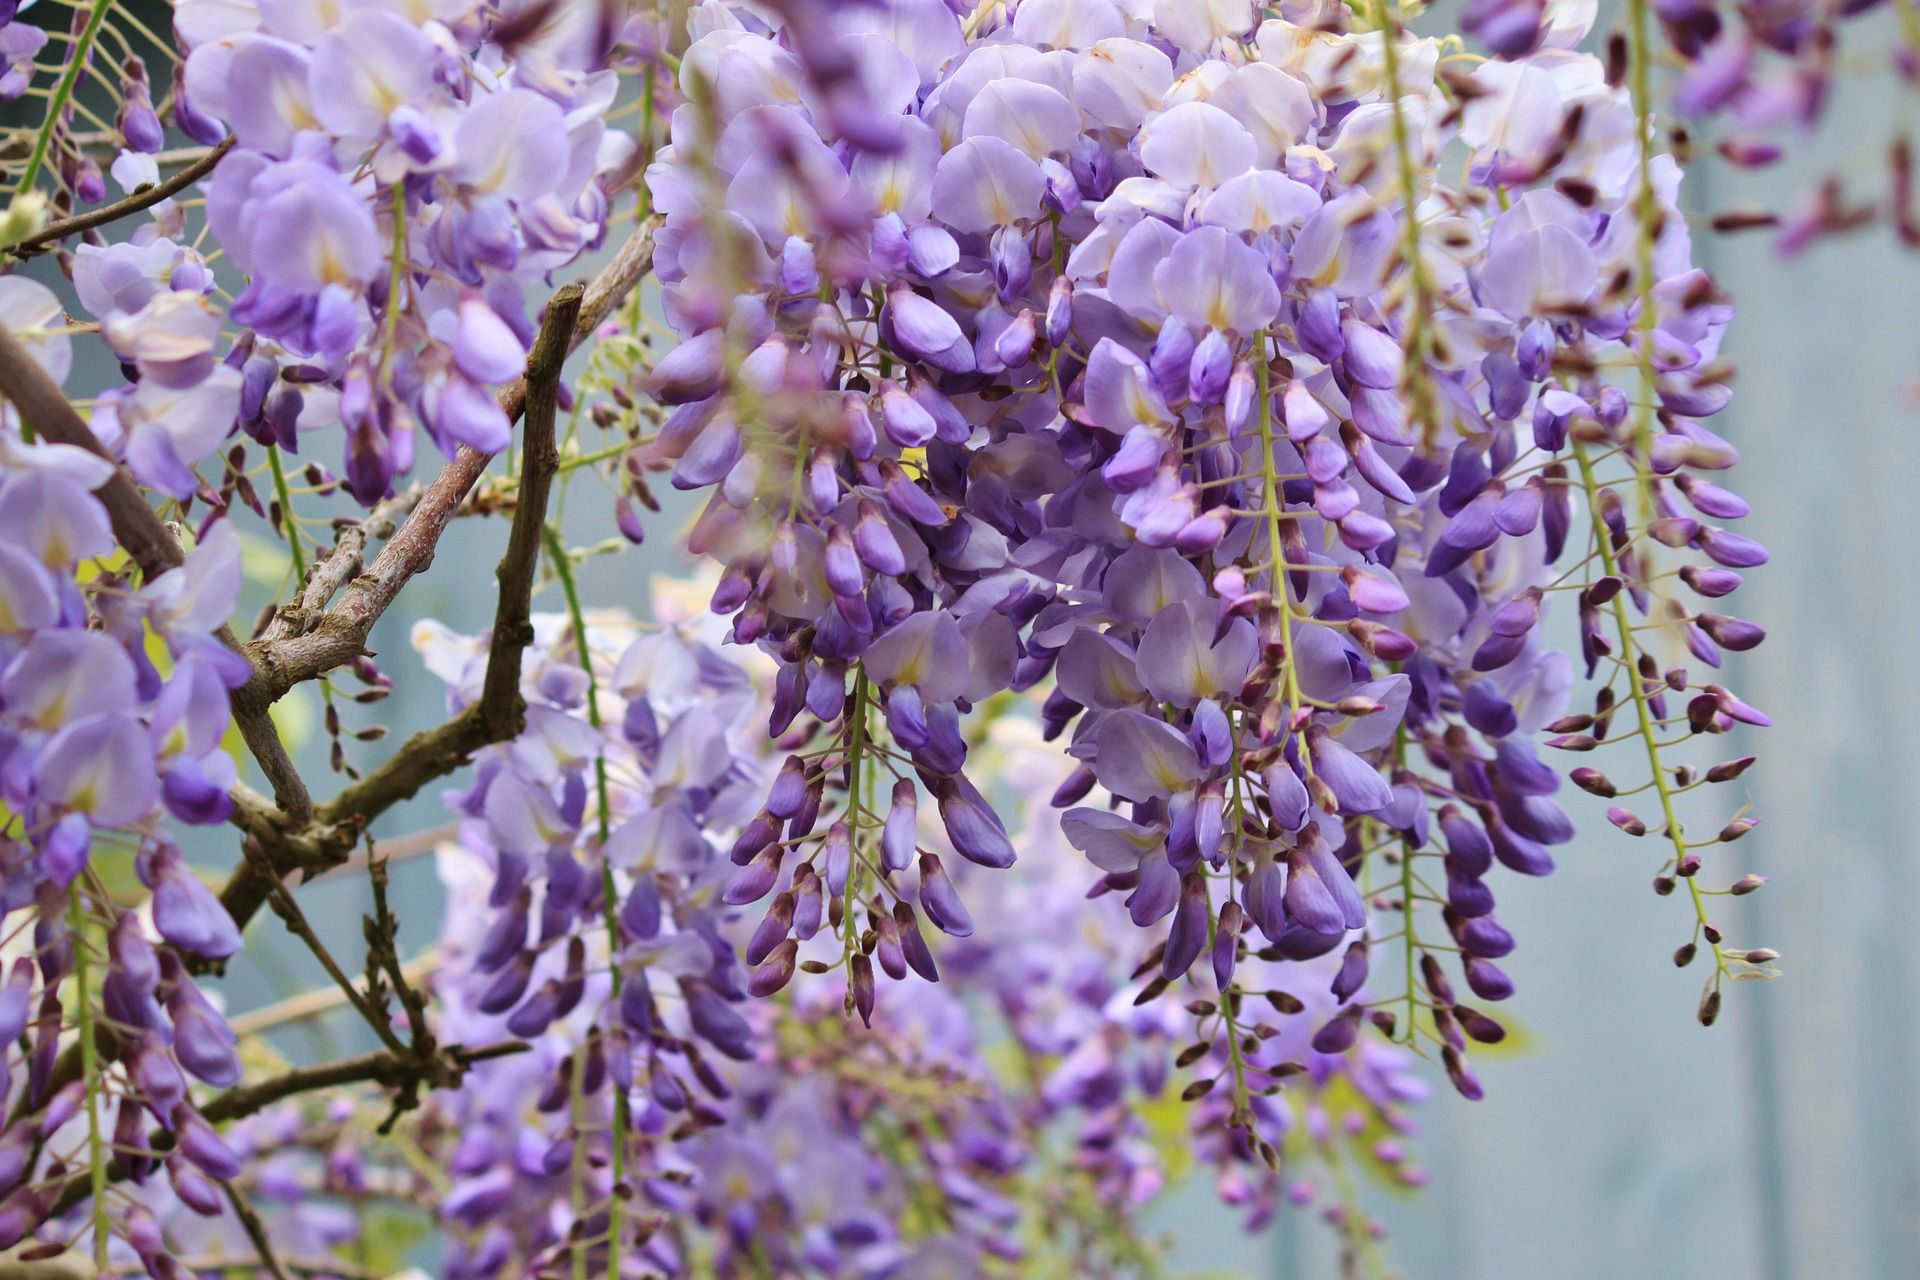 Wisteria Wisteria Plant Flowering Vines Smelling Flowers